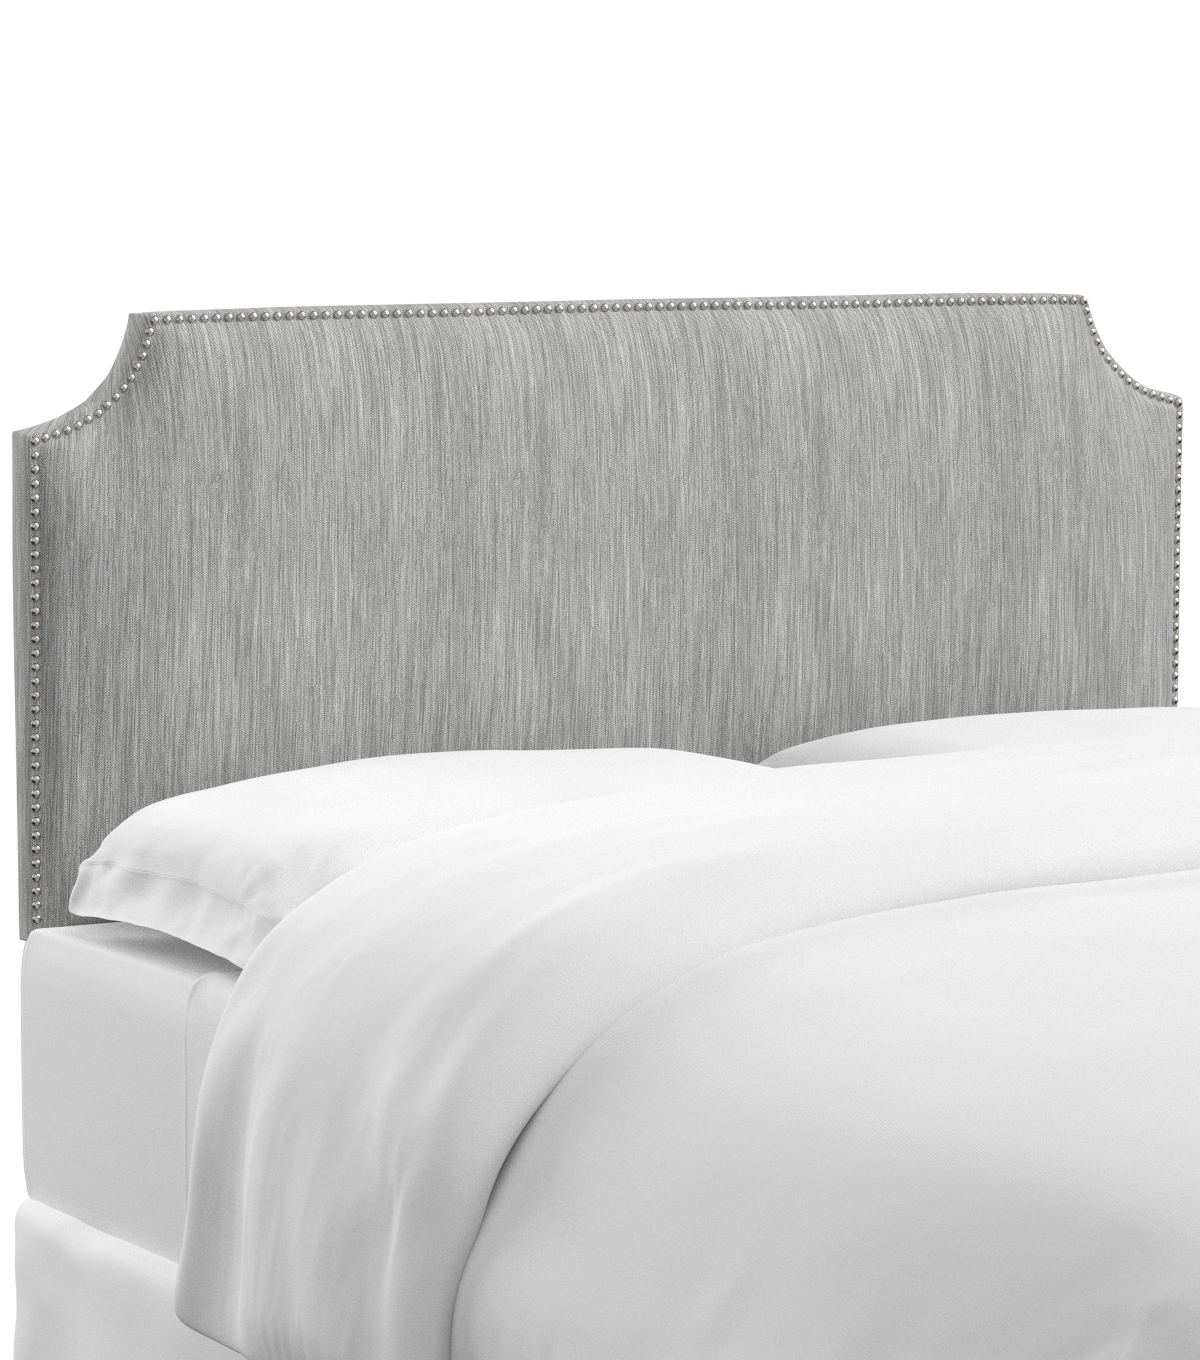 Skyline Furniture Notched Nail Button Headboard-Twin